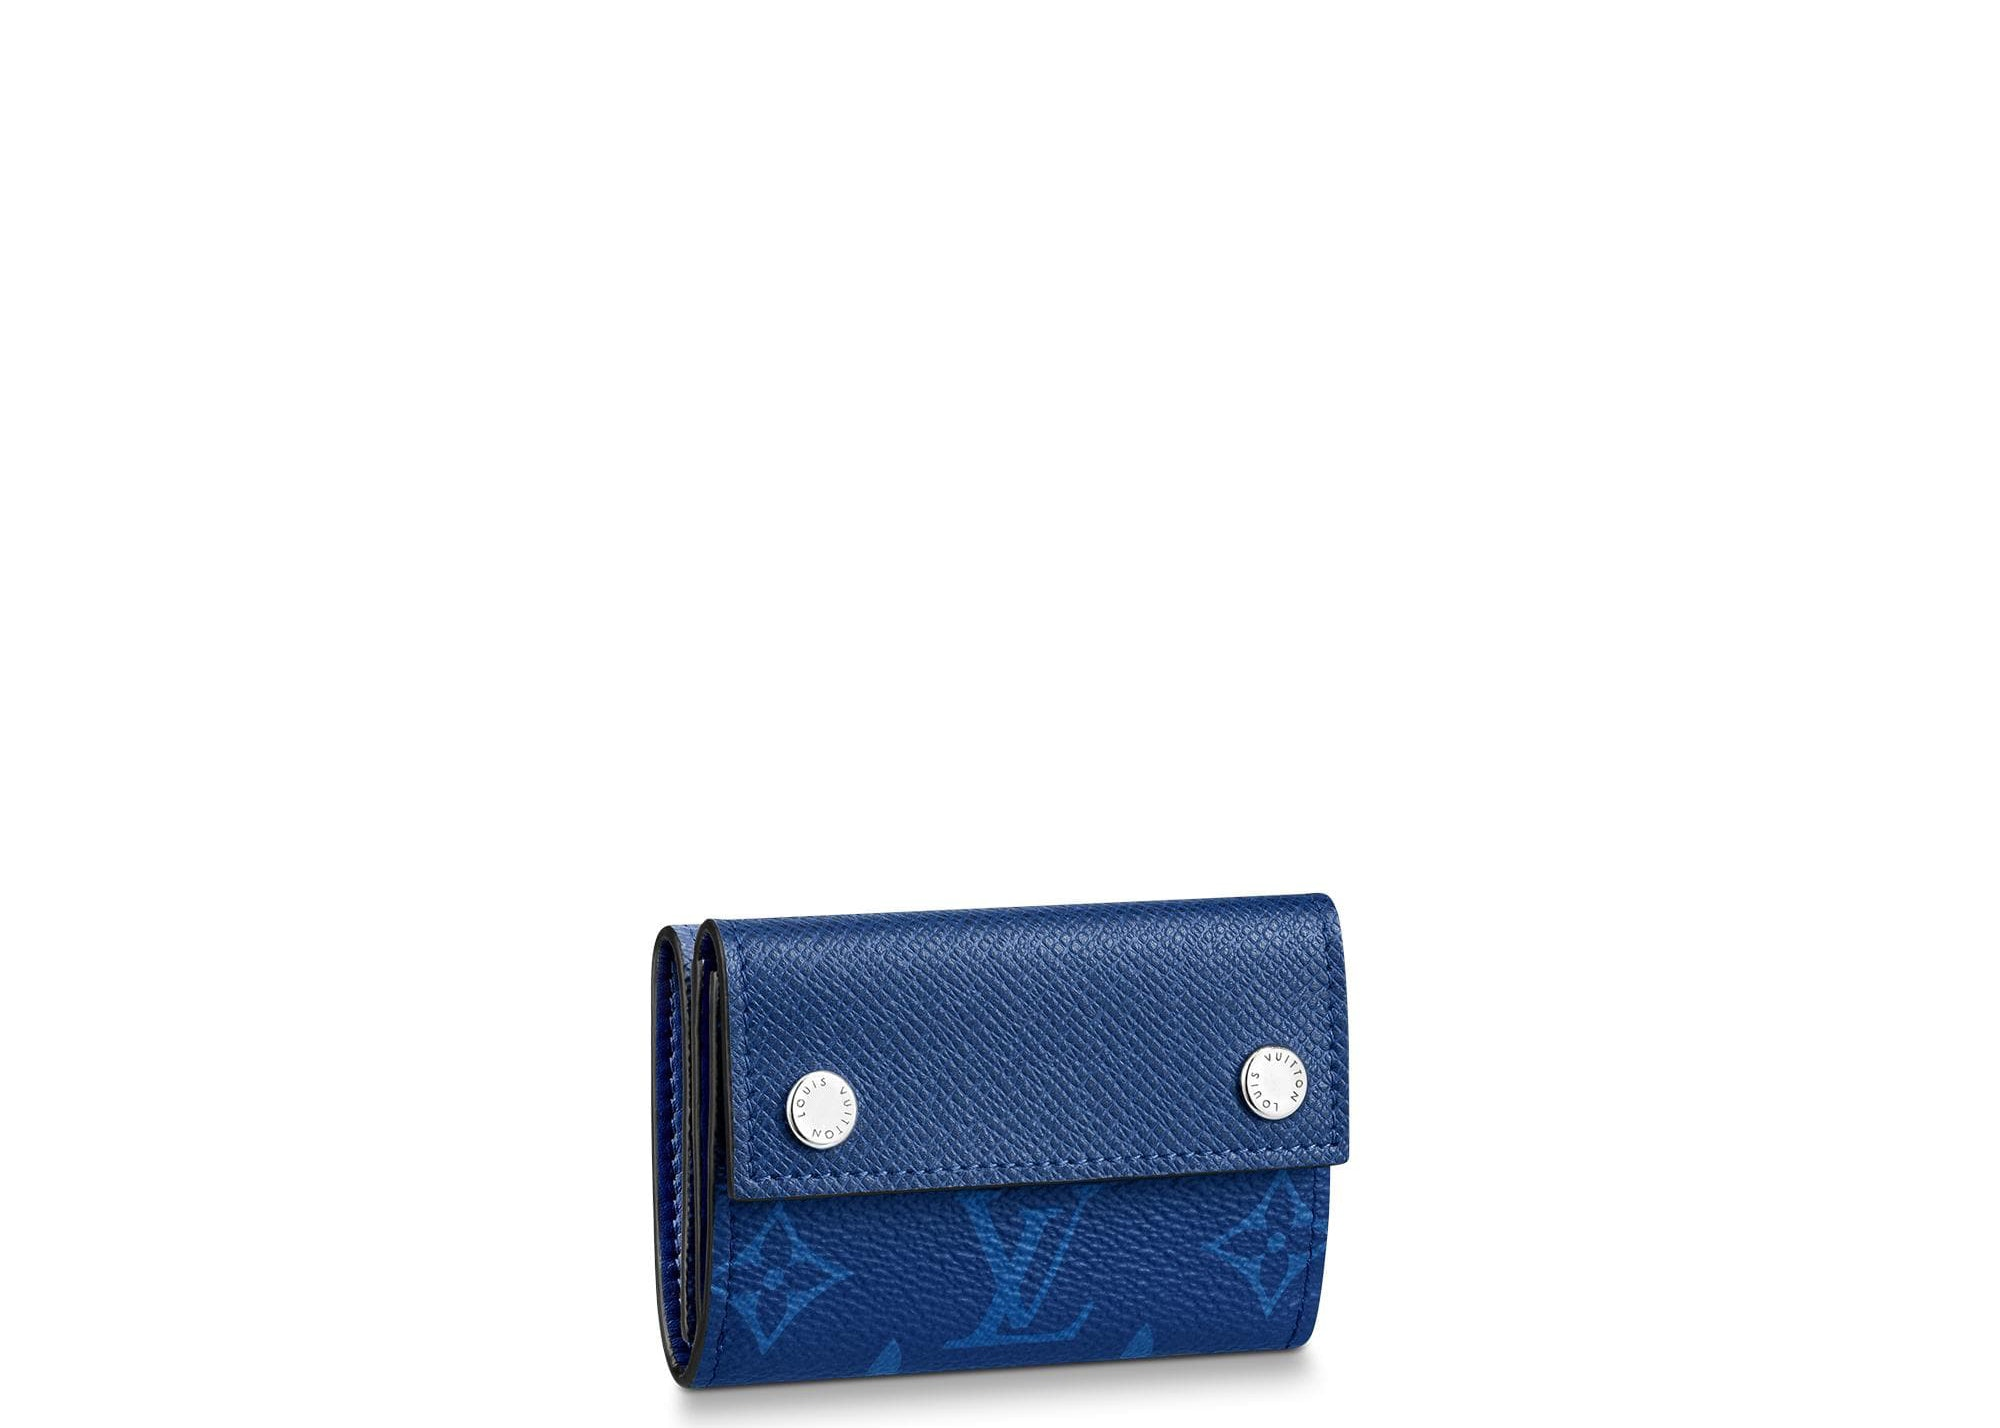 Louis Vuitton Discovery Compact Wallet Monogram Pacific Taiga Blue